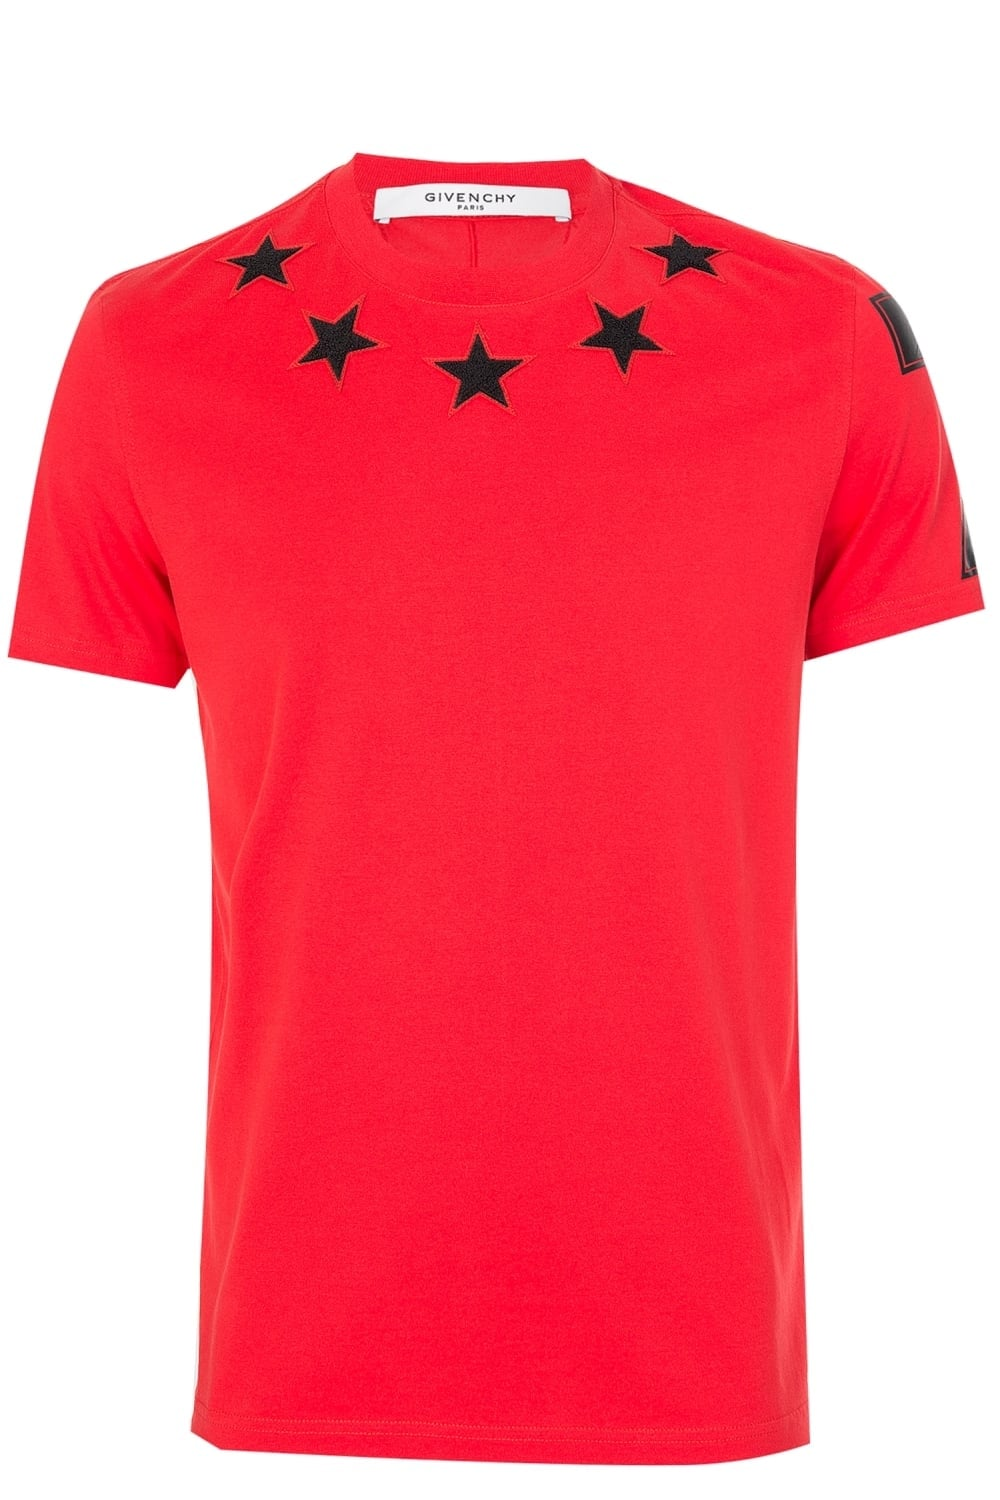 49415ffc406b6f Givenchy Cuban Fit Star Neckline T-Shirt Red